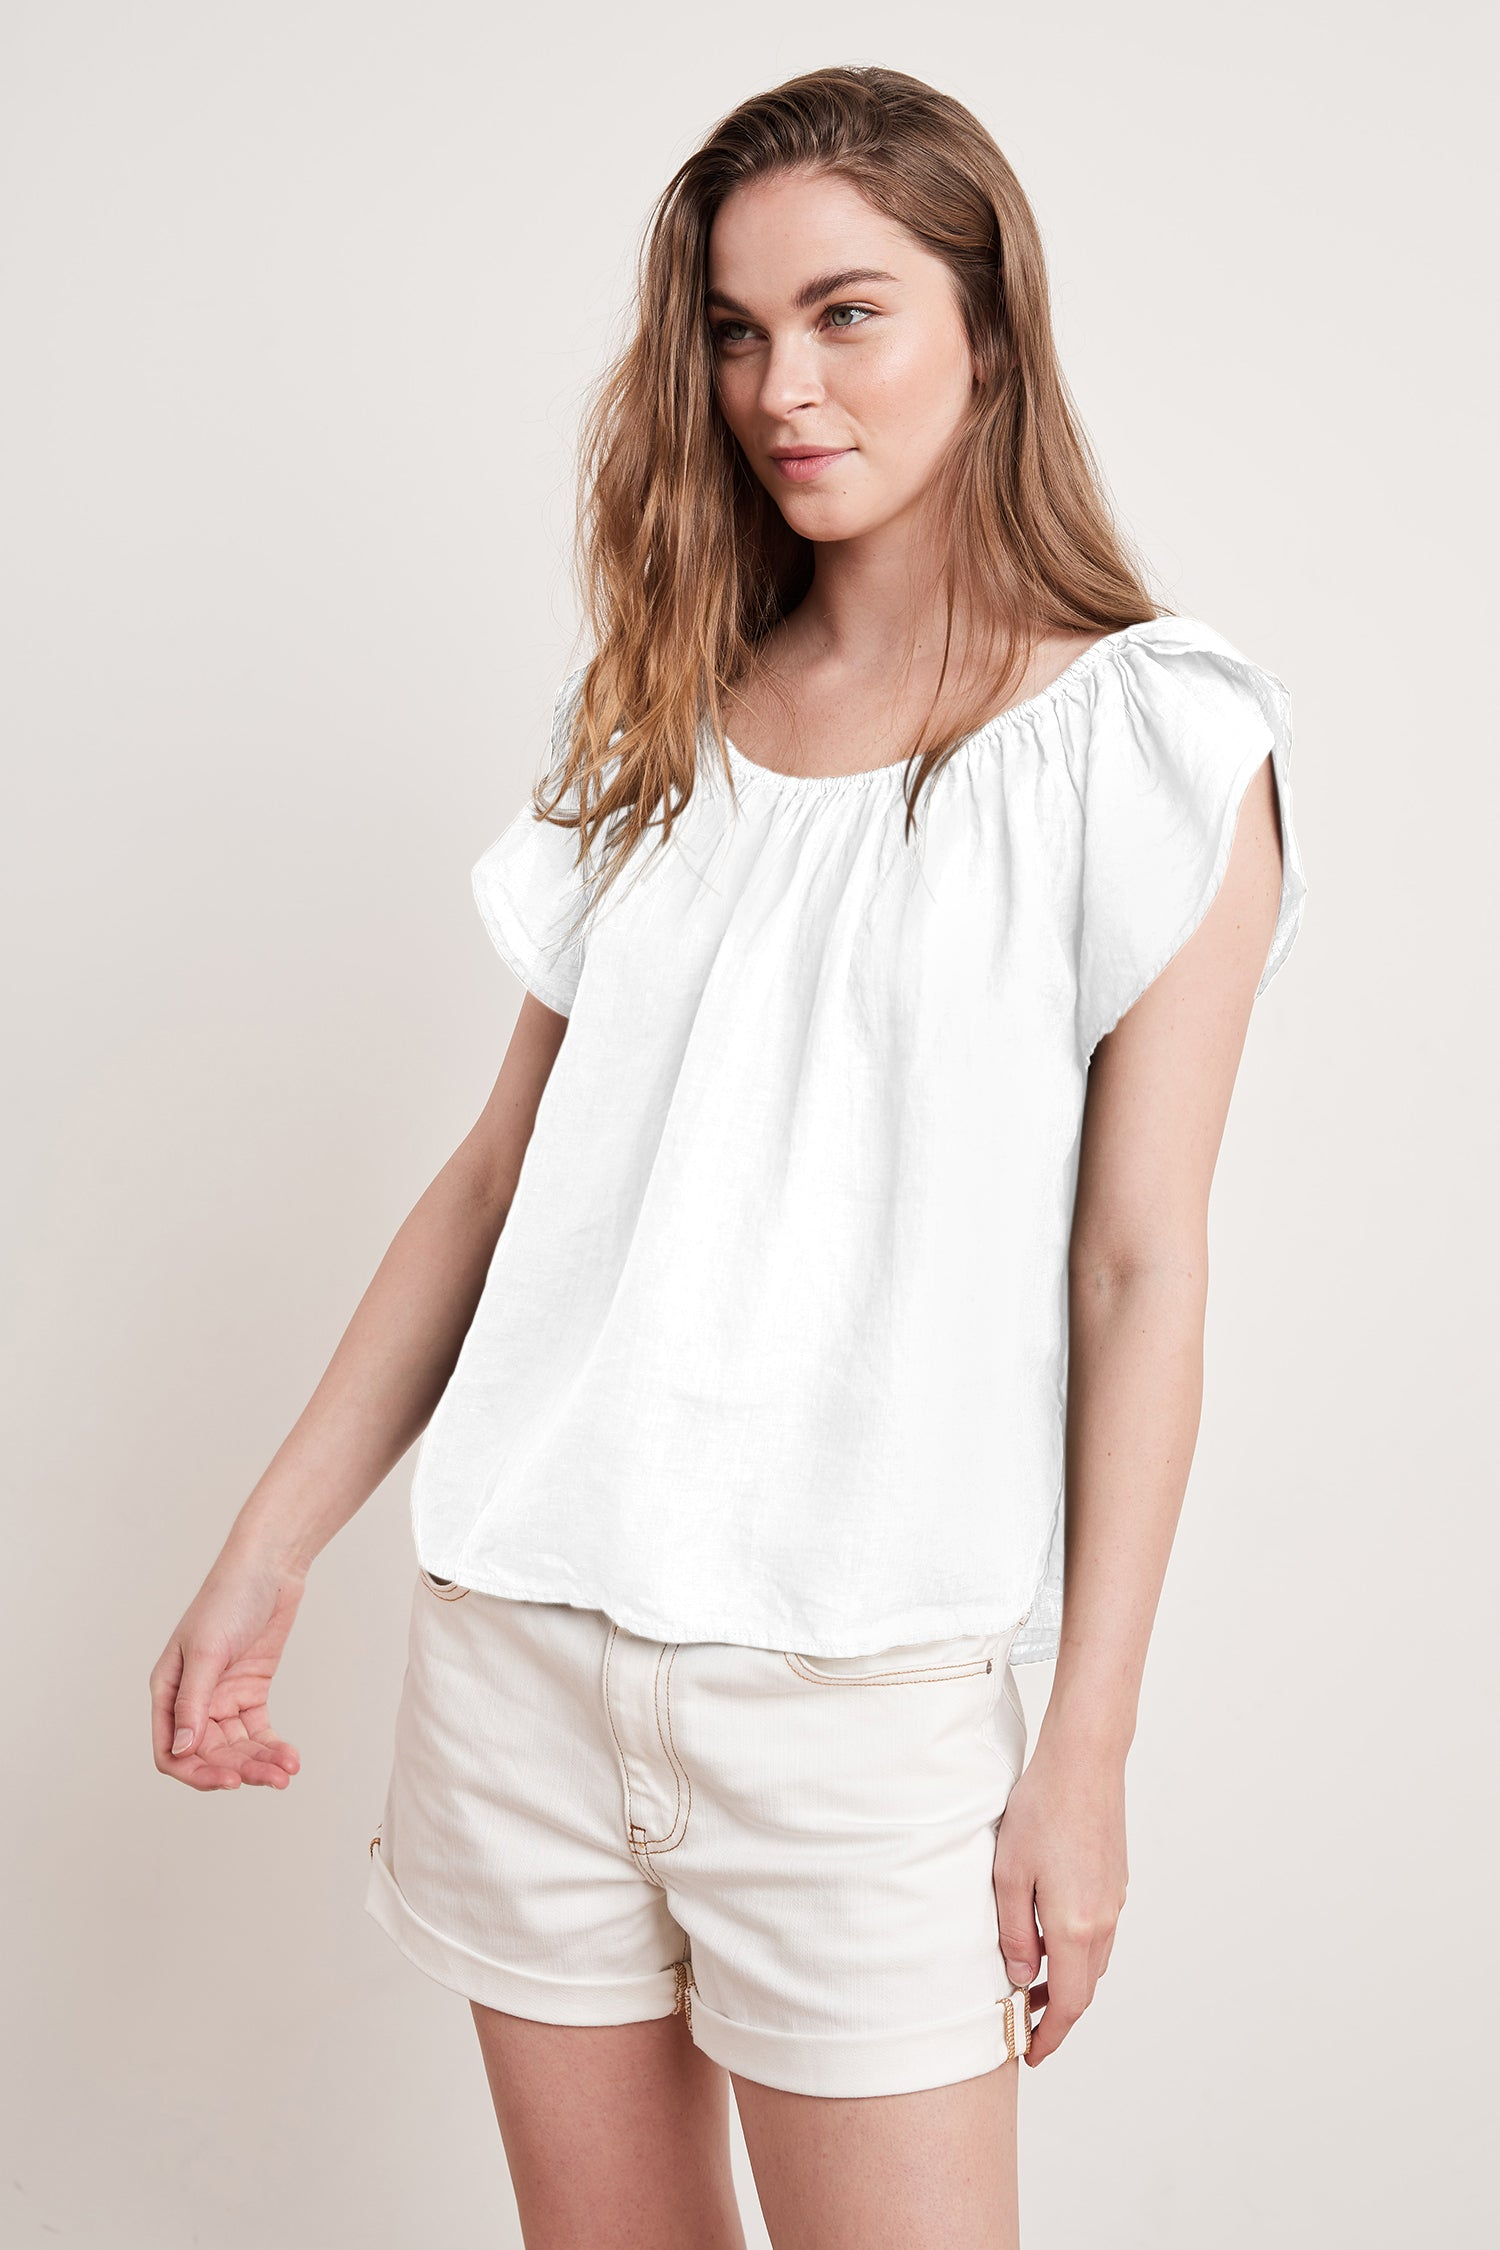 CEILA WOVEN LINEN TOP IN WHITE